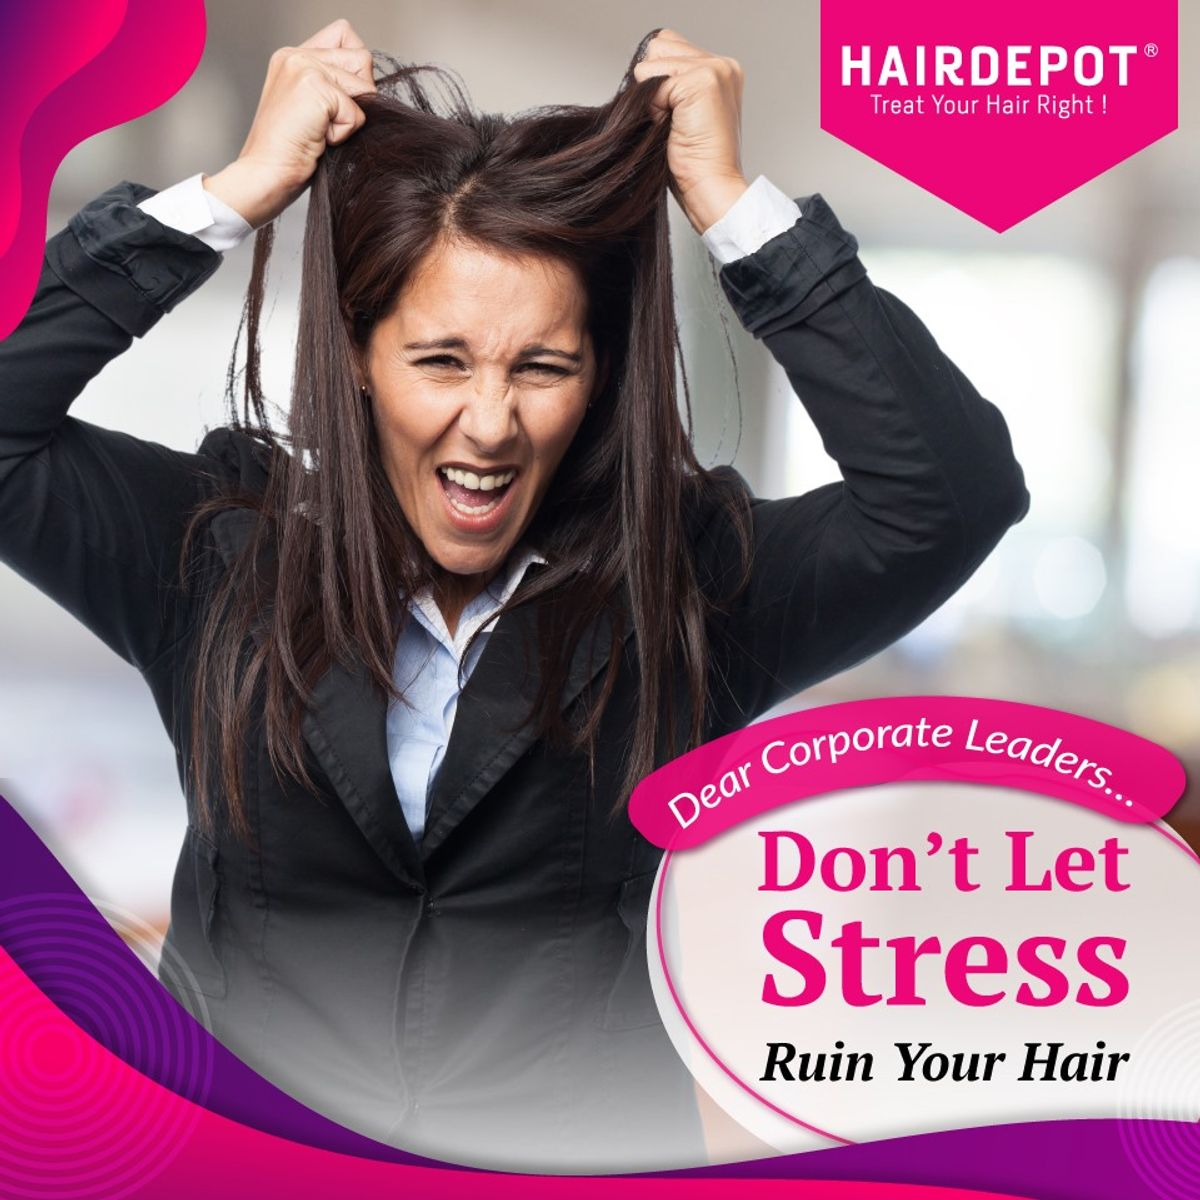 Don't Let Stress Ruin Your Hair